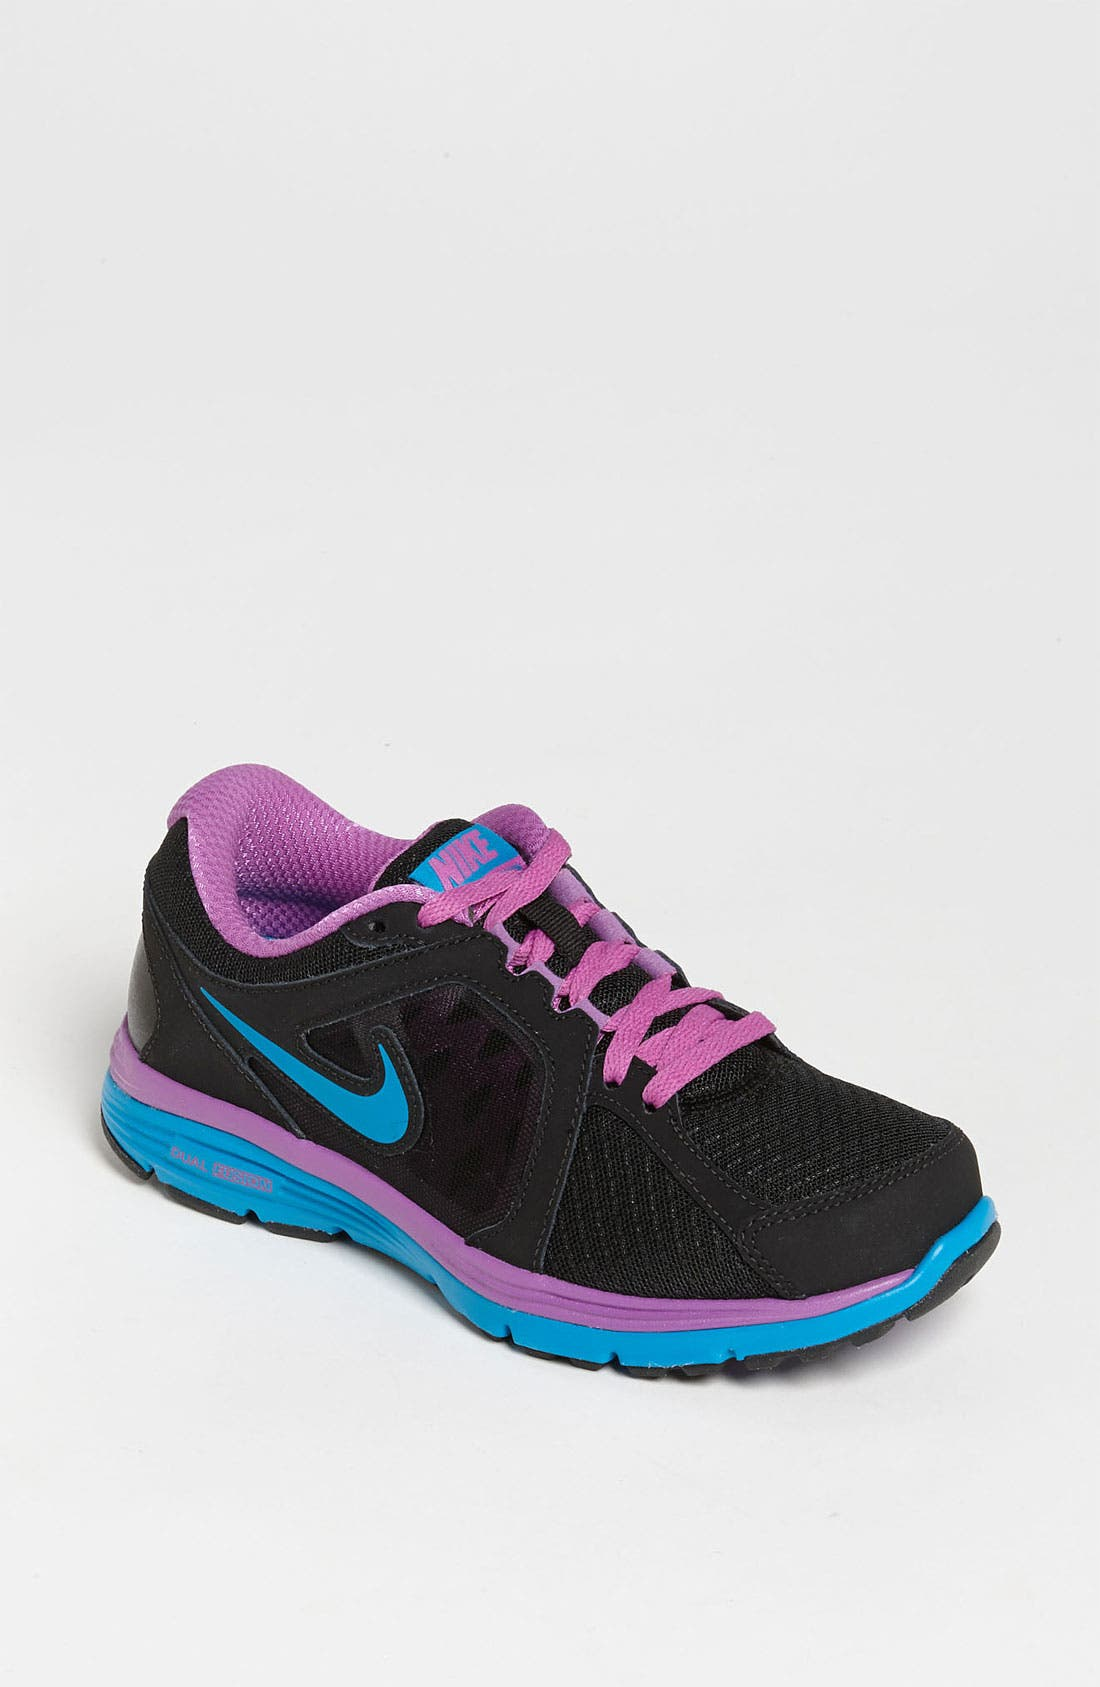 Main Image - Nike 'Dual Fusion 3' Running Shoe (Women)